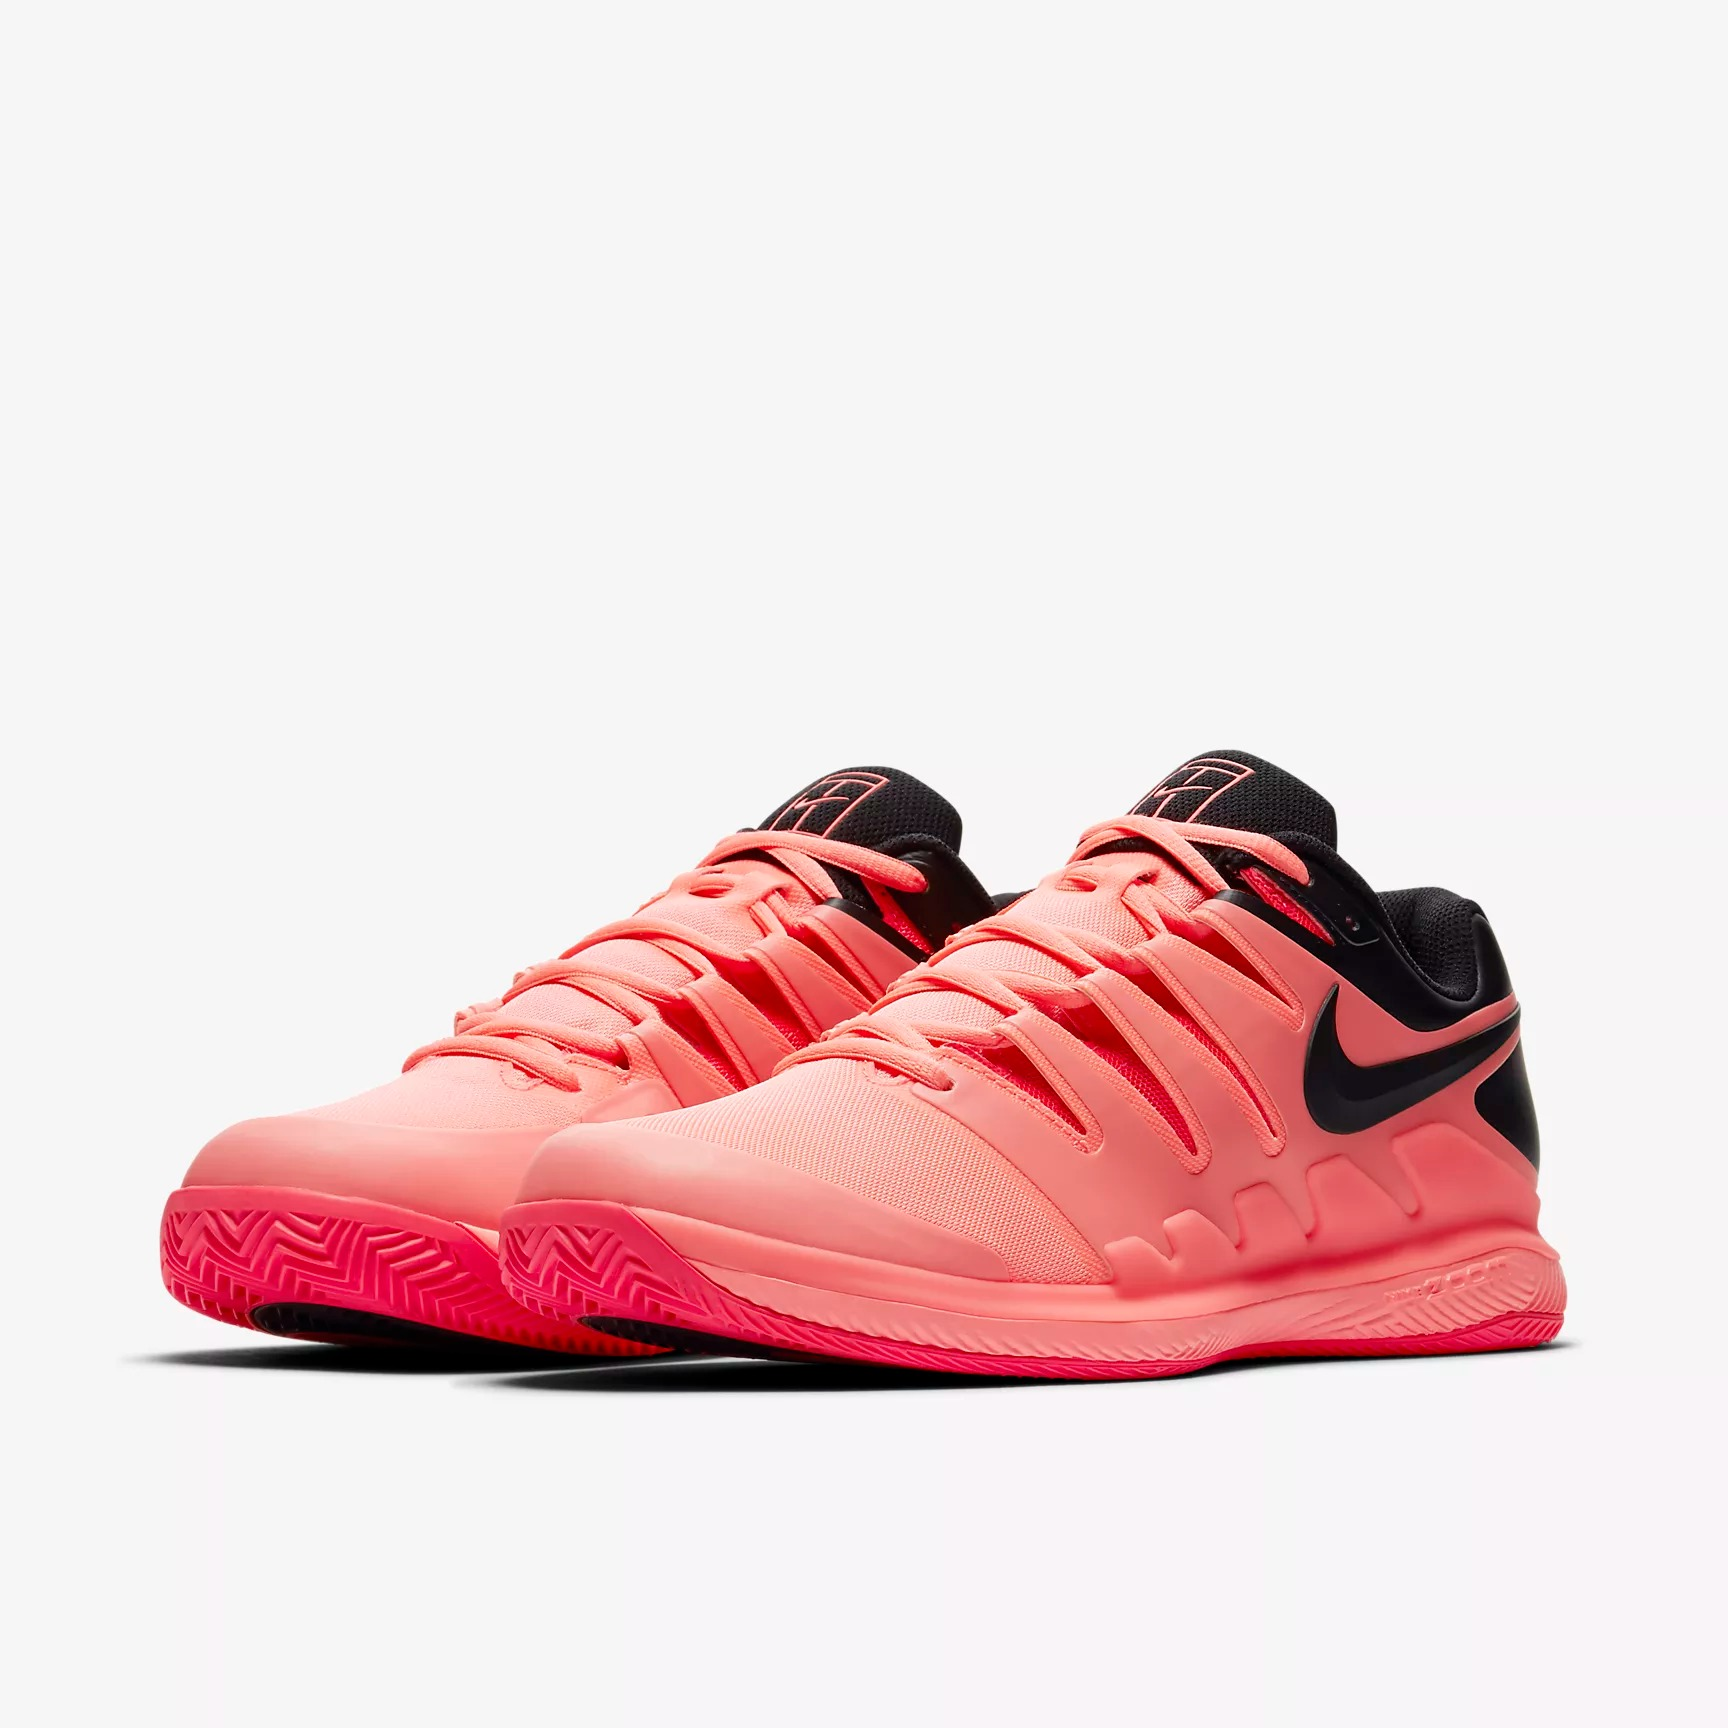 Nike PerformanceAIR ZOOM VAPOR X CLAY - Outdoor tennis shoes - black/solar red/white 9tIUL